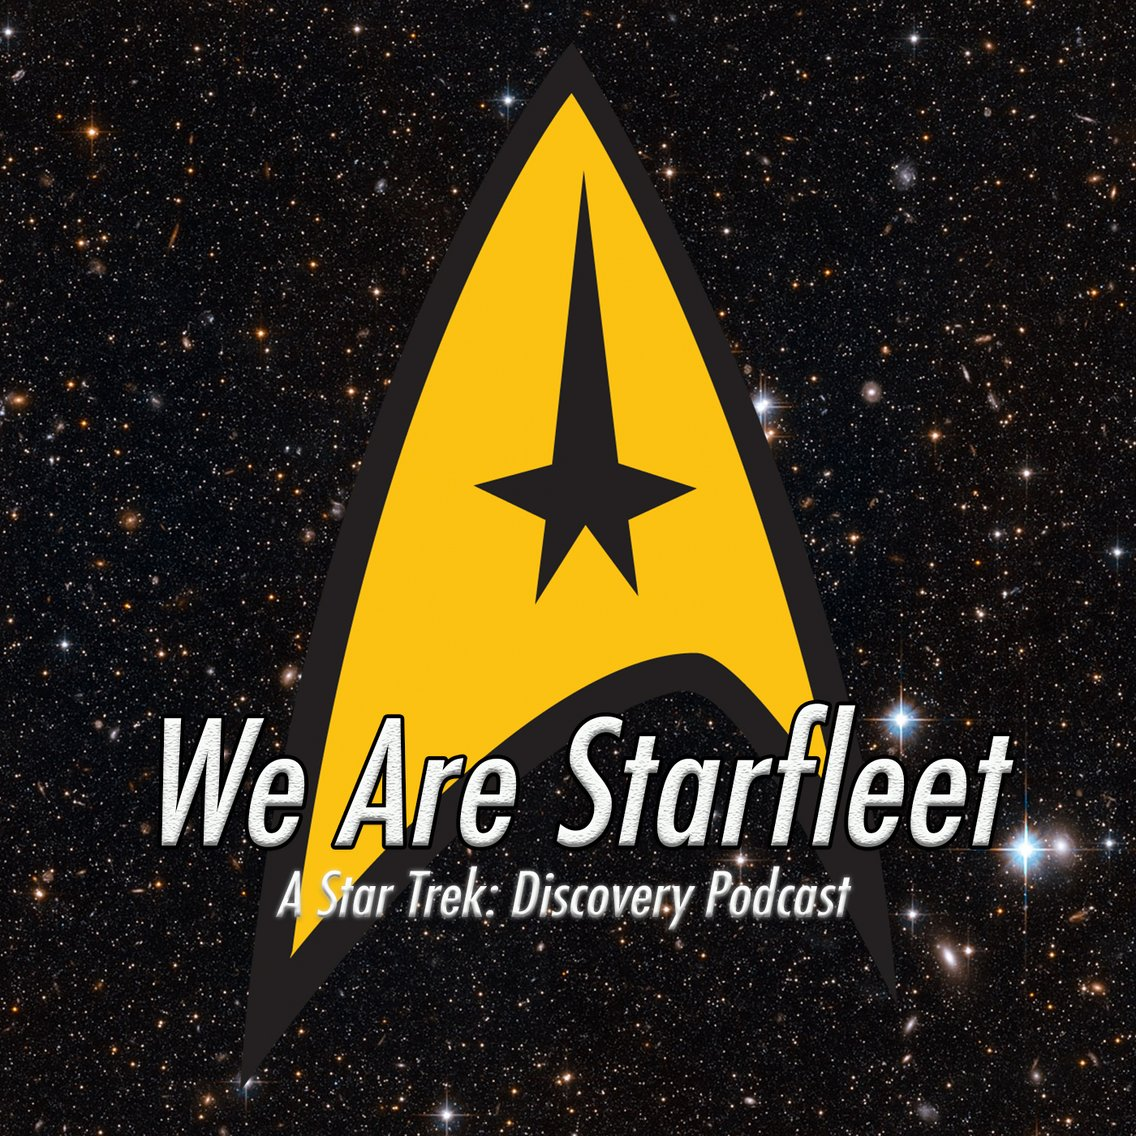 We Are Starfleet - A Star Trek: Discovery Podcast - Cover Image